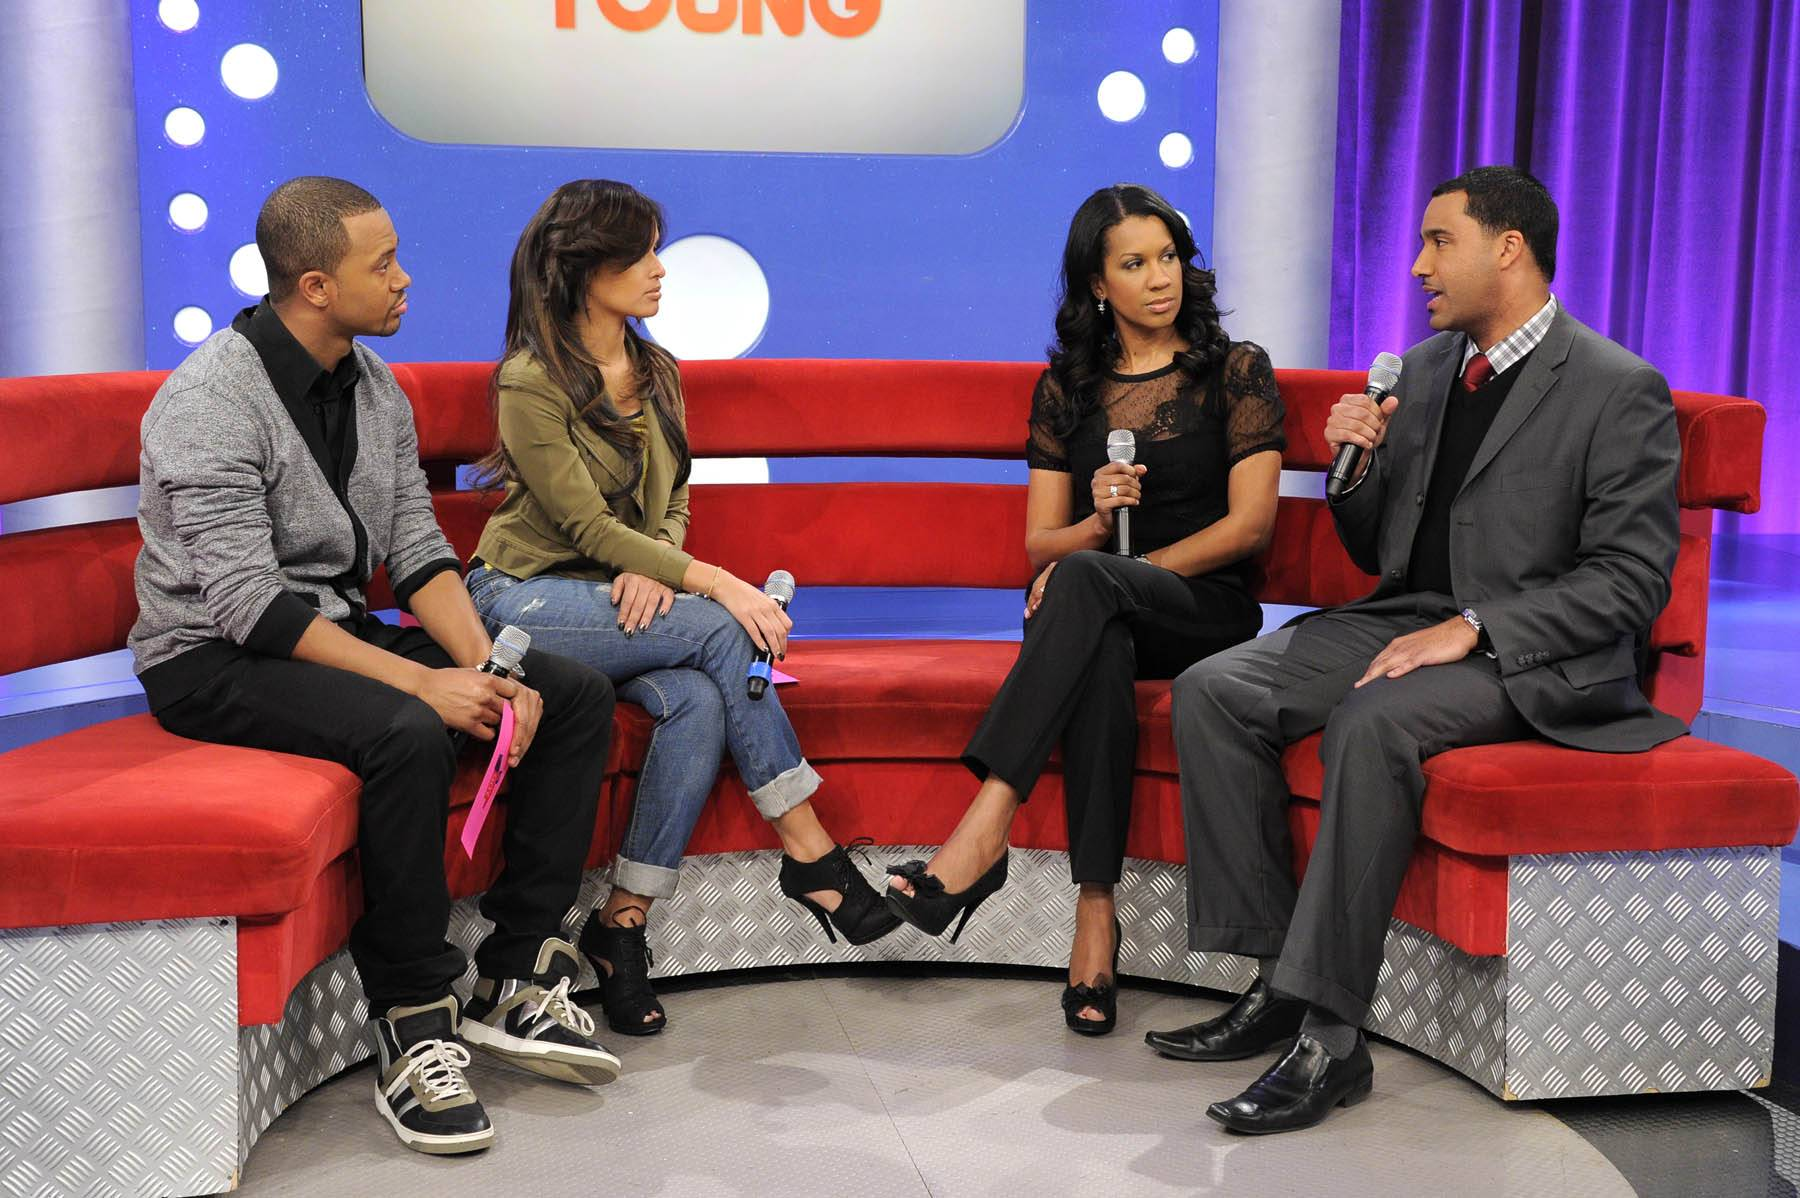 You Can Do It - Terrence J and Rocsi Diaz talk with Dr. Michelle and Dr. Alduan Tarrt about single parenting at 106 & Park, January 30, 2012. (Photo: John Ricard / BET)